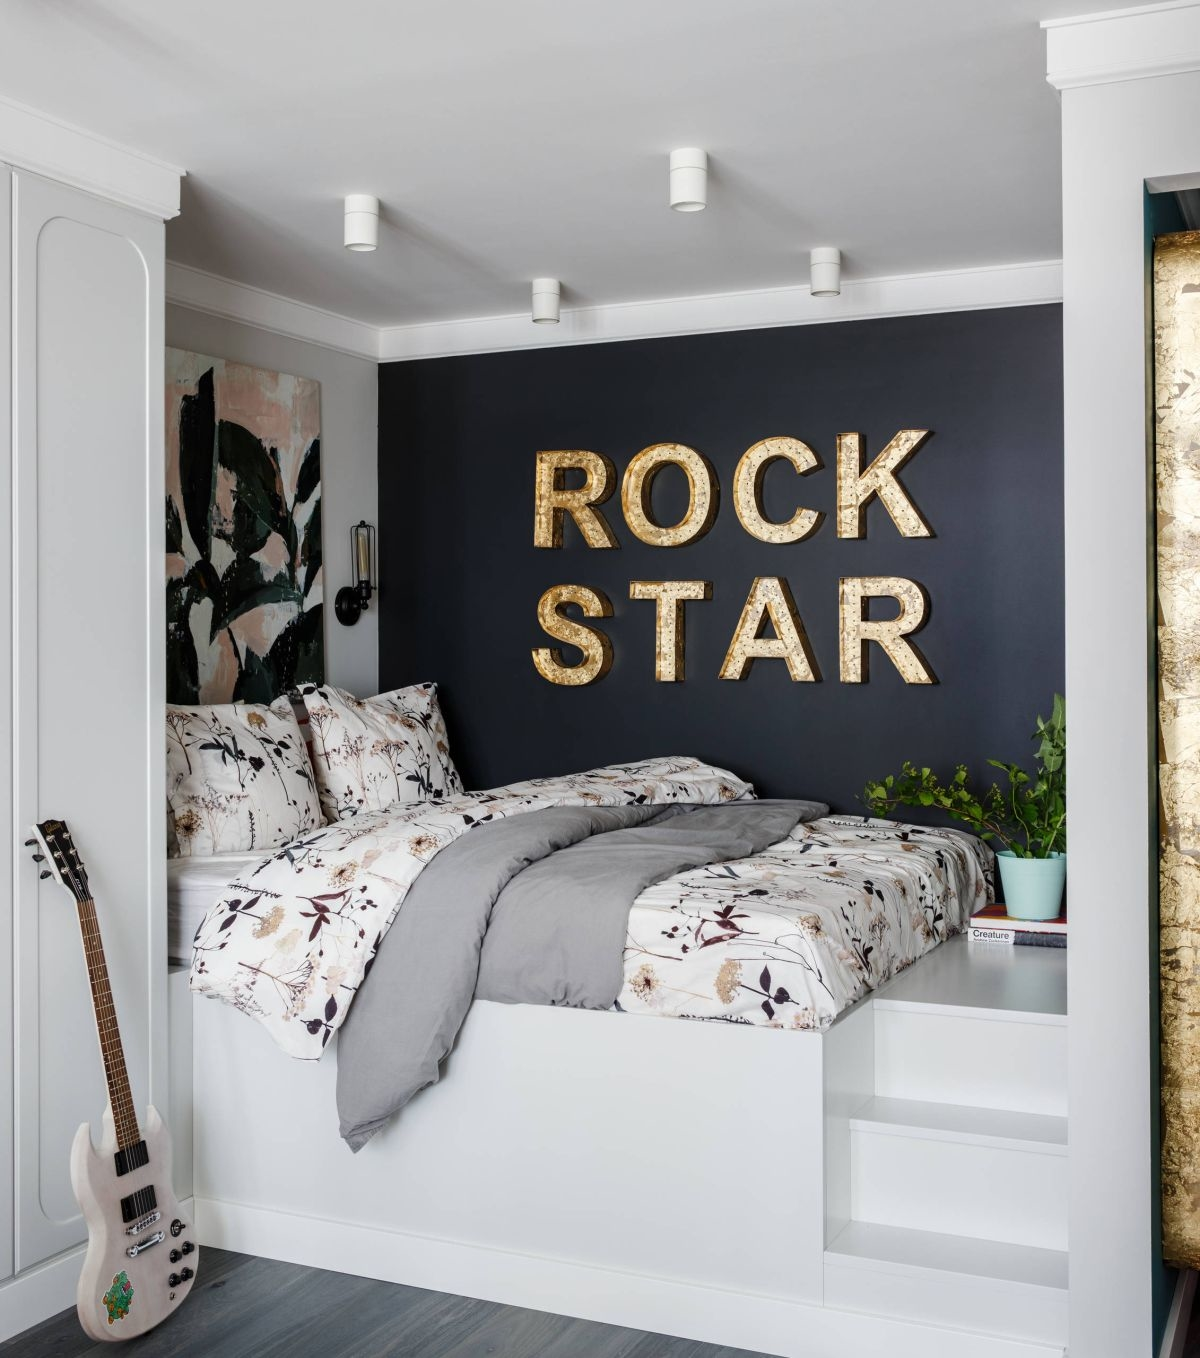 Decorating a small bedroom around a king size bed needn't be a chore if you  follow a few simple rules to maximise the storage opportunities in your room  and